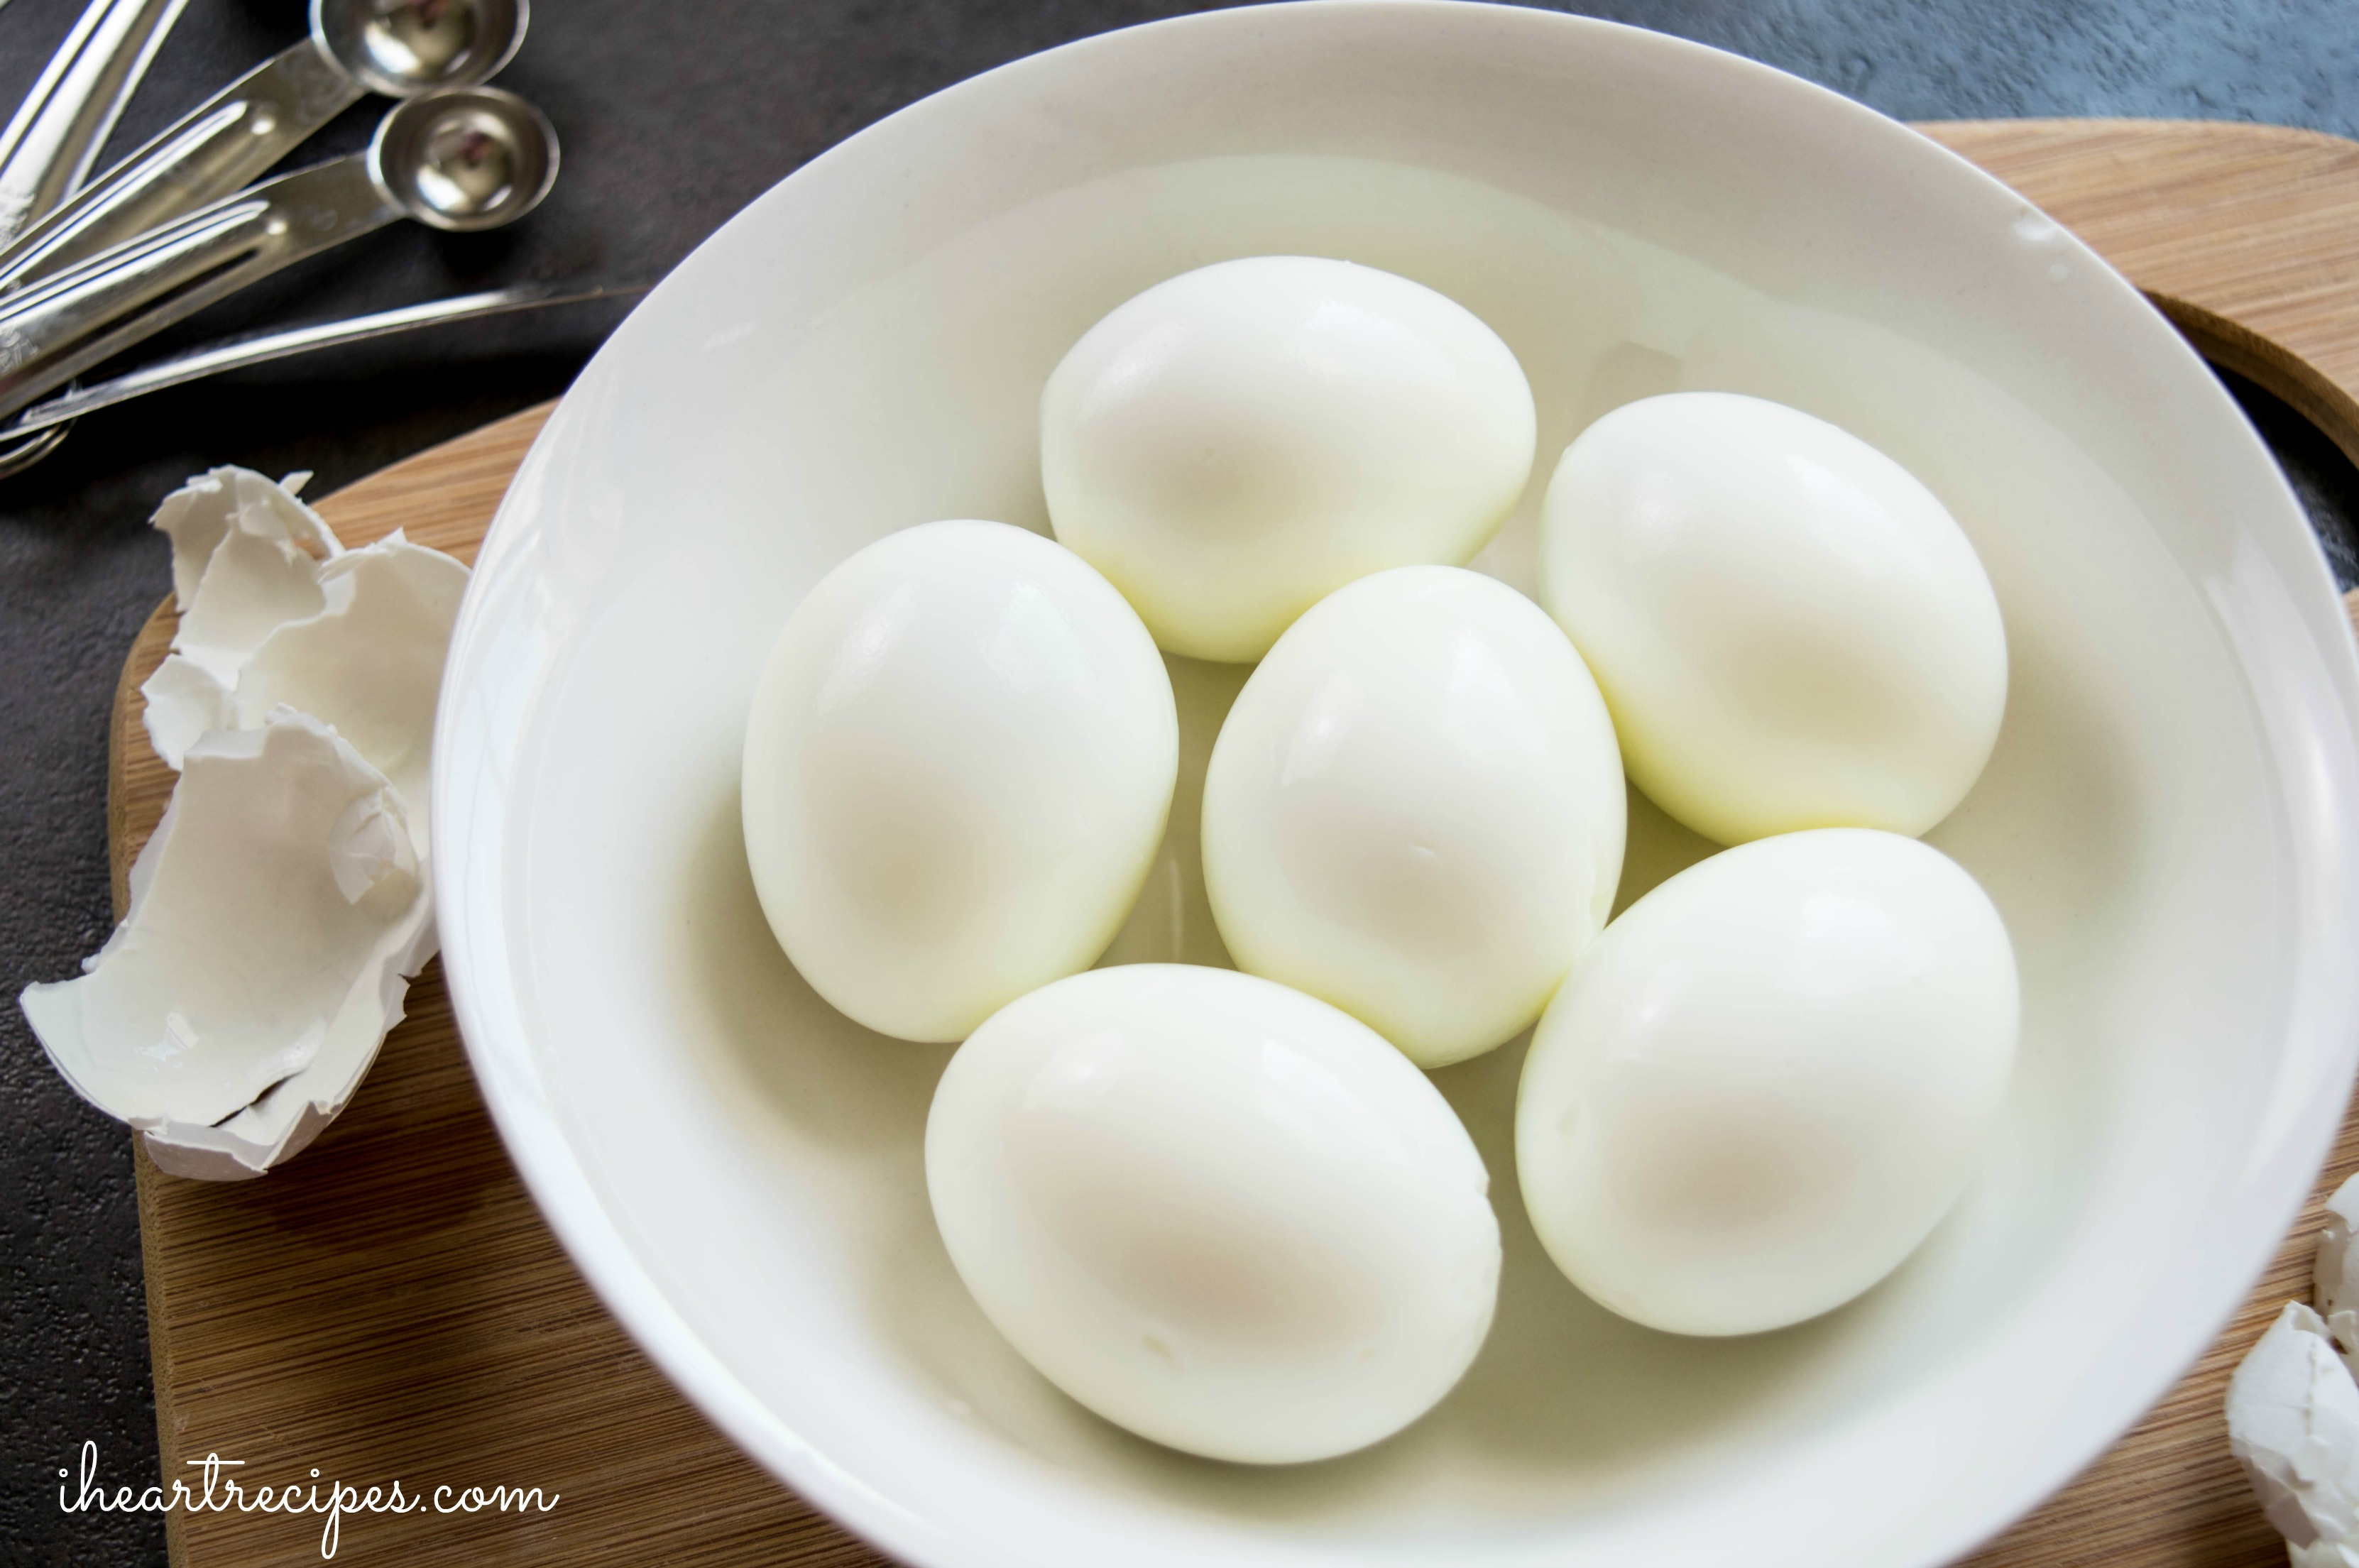 Turn simple hard boiled eggs into mouth-watering southern style deviled eggs with this easy and delicious recipe.